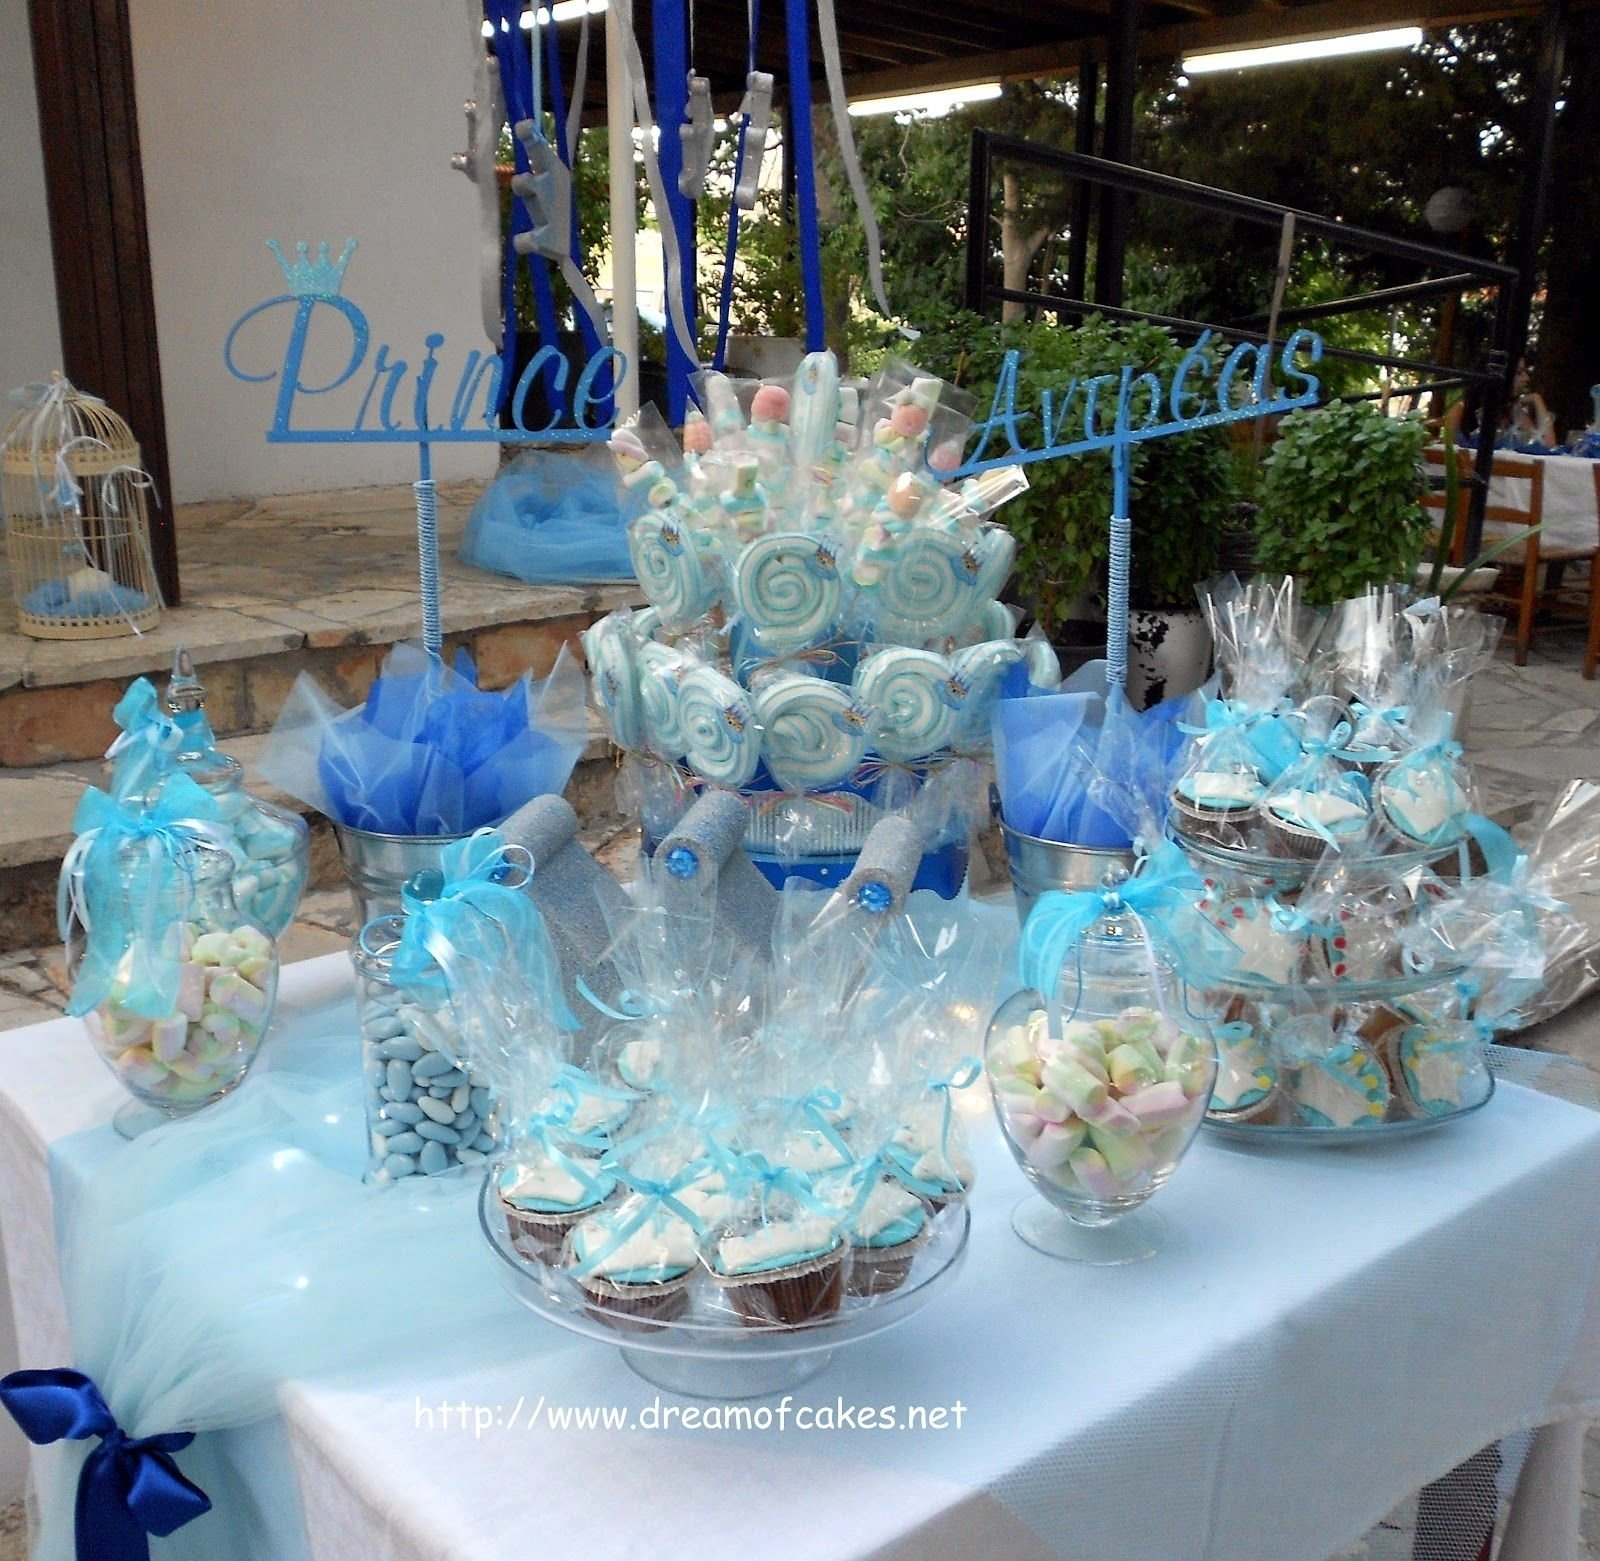 10 Famous Baptism Party Ideas For Boys christeningdecorationsideasforboys displaying 17 images for